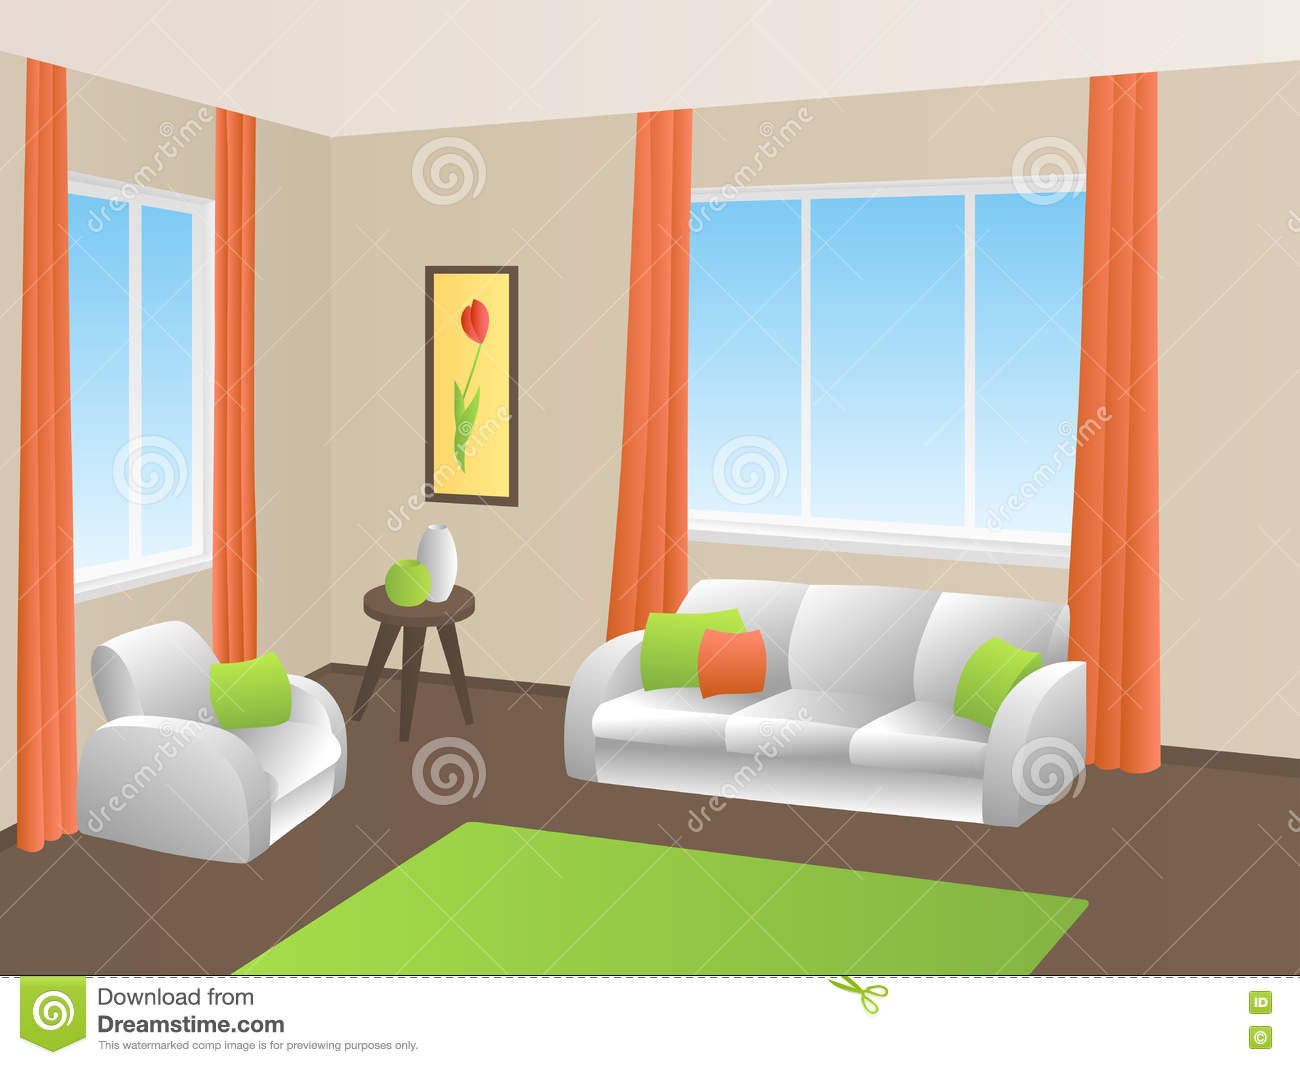 living room interior green orange yellow white sofa armchair